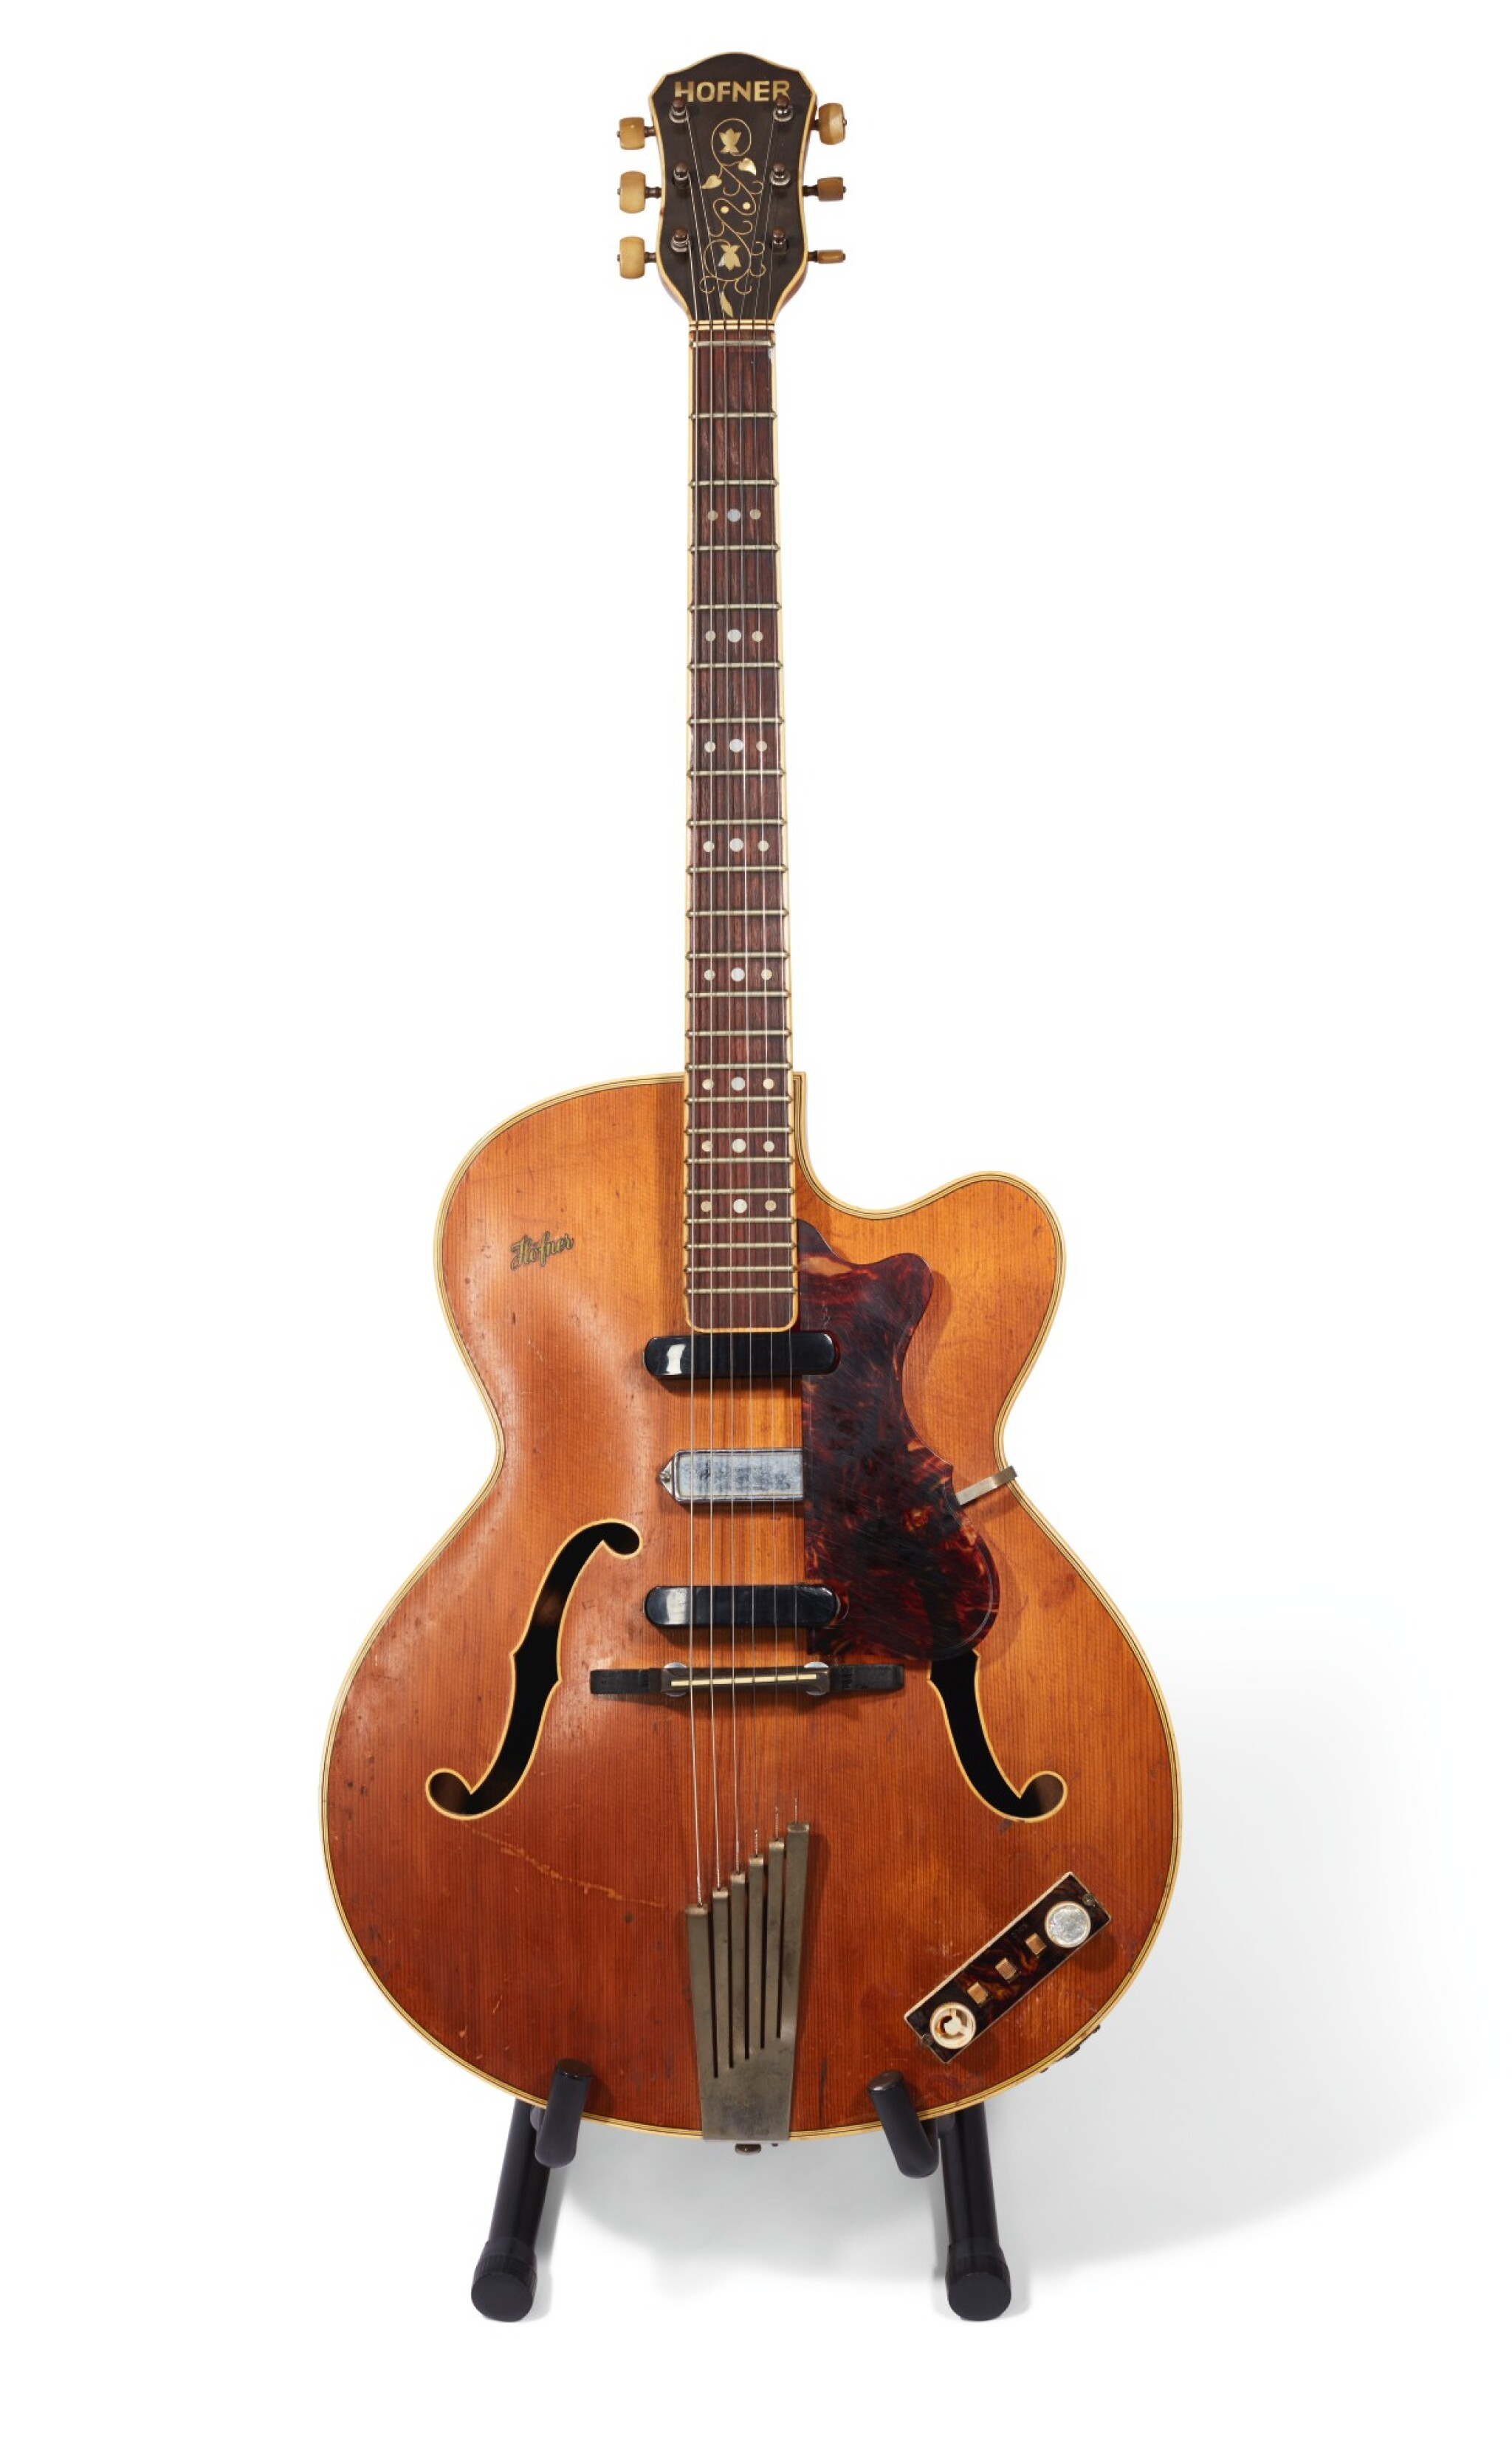 GEORGE HARRISON   1959 Hofner President 'thinline' semi-acoustic guitar, owned by him and given to Alan Herring